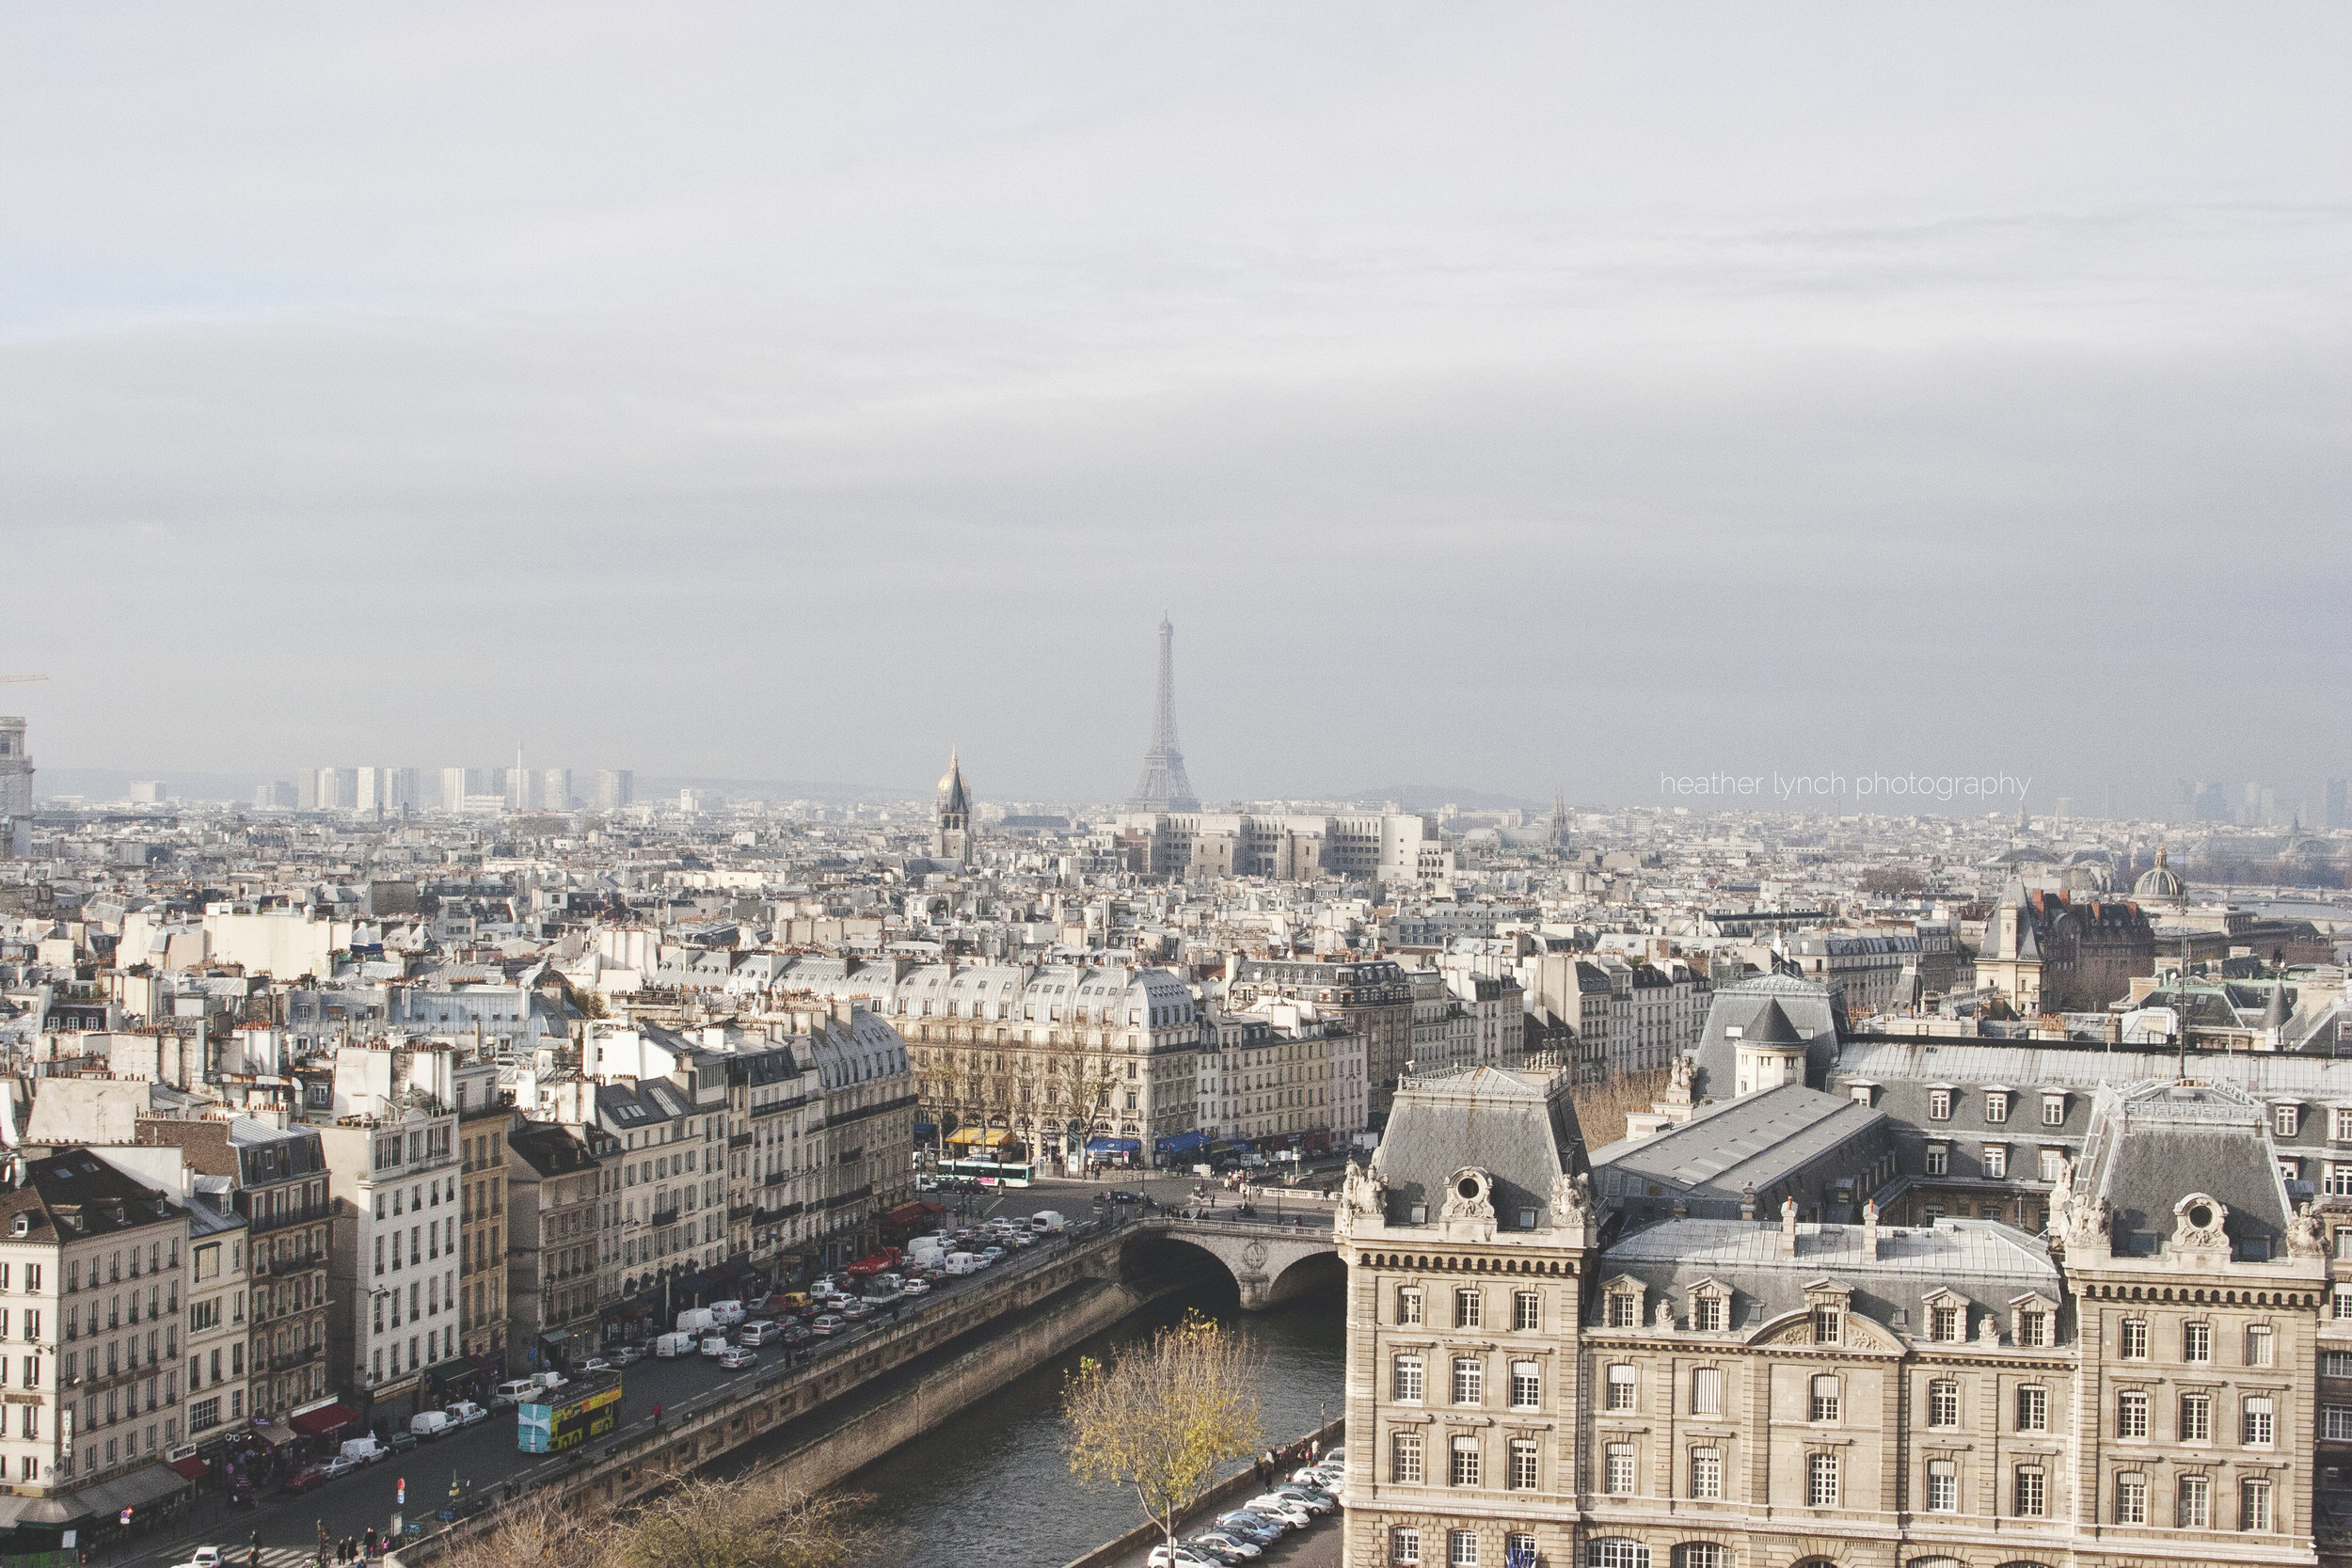 The view from the top of Notre Dame, toward the Eiffel Tower.